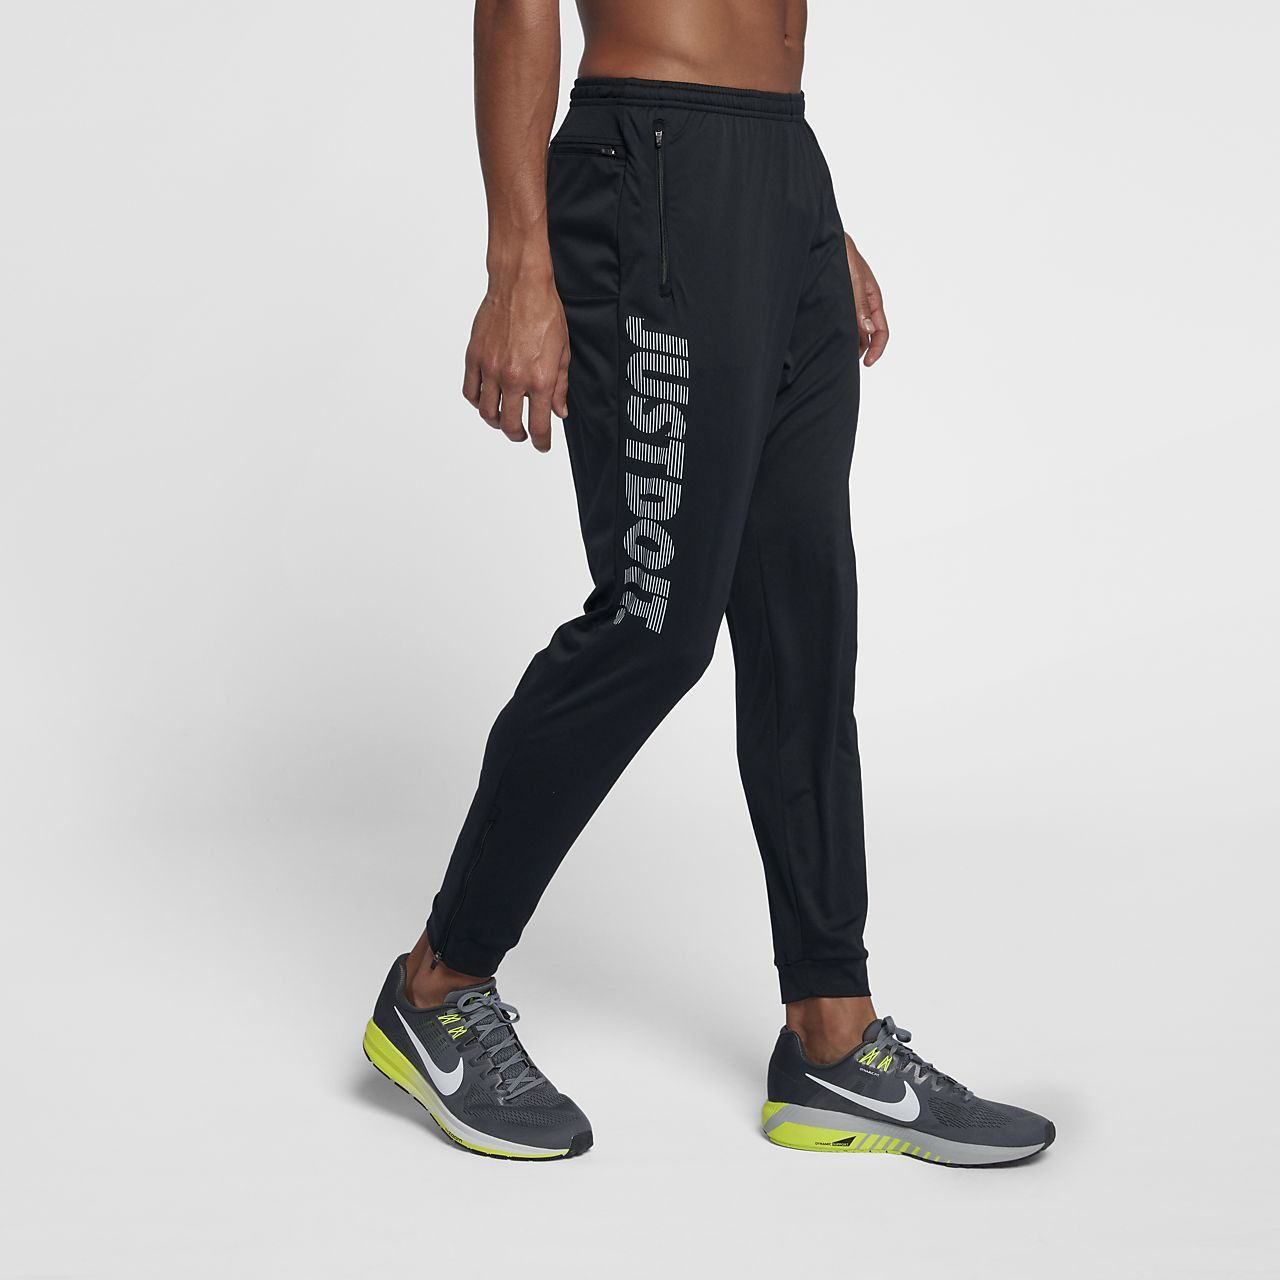 ec218e1e906a Nike Essential Men s Running Trousers. Nike.com IN